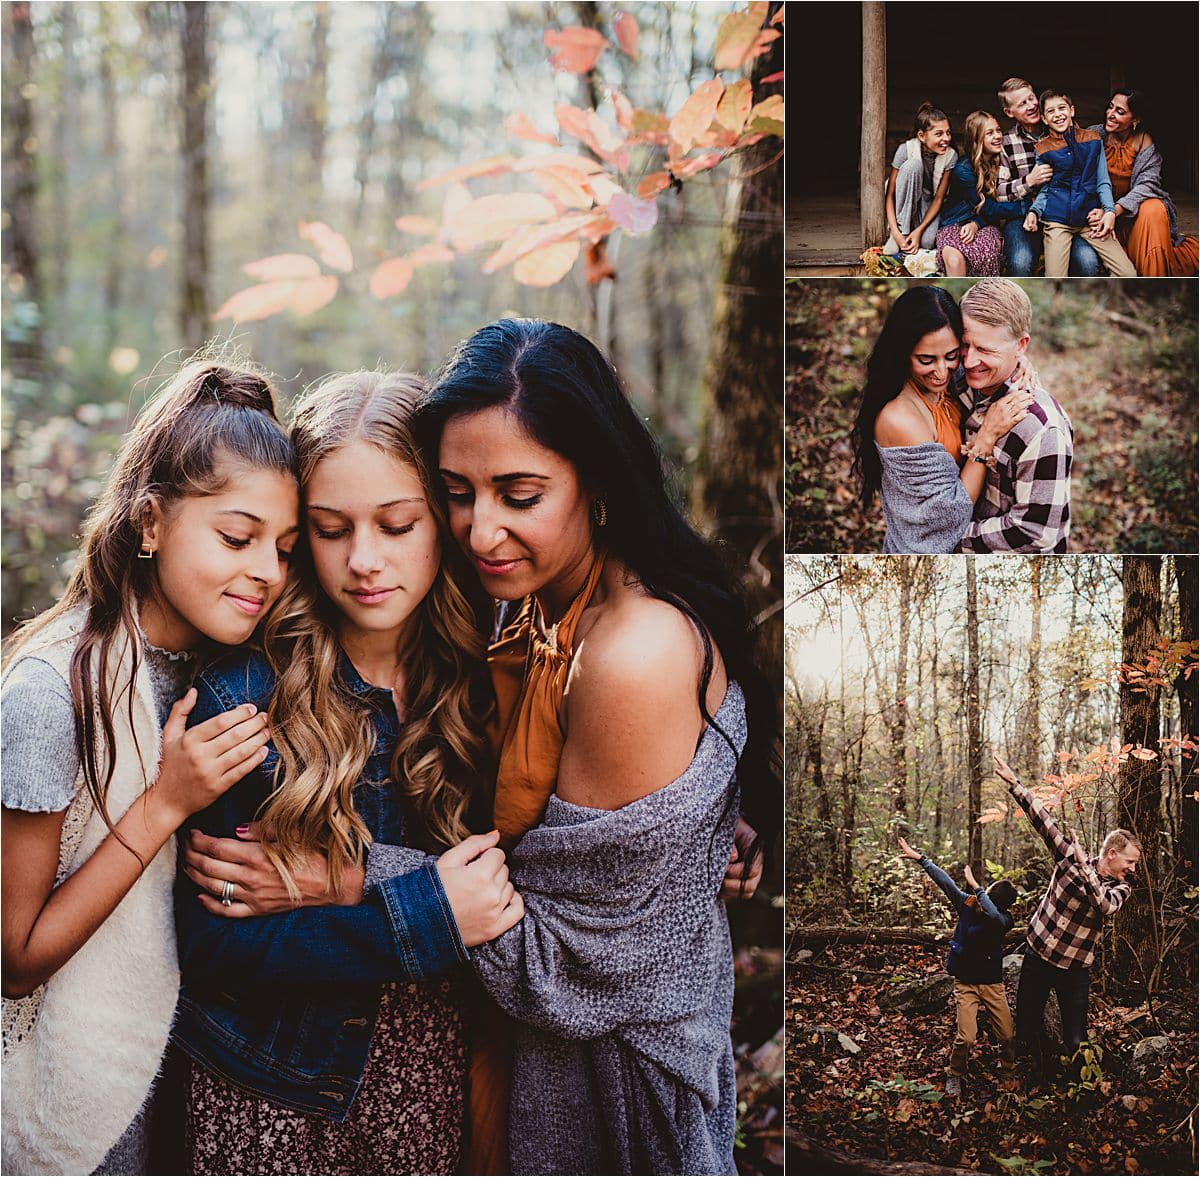 Collage Family in Forest